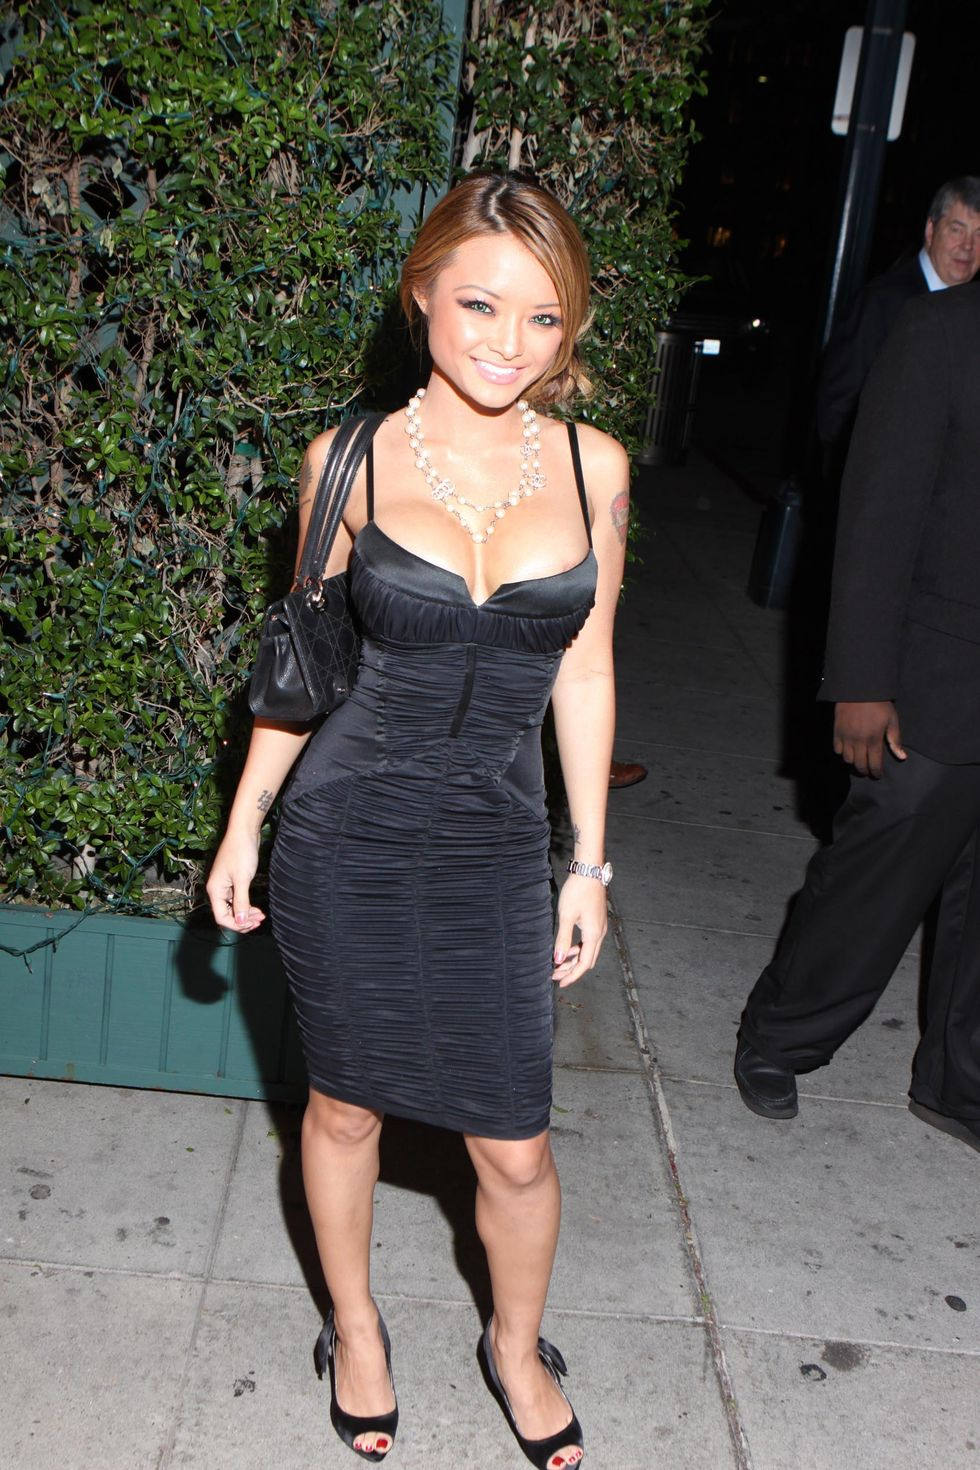 tila-tequila-cleavage-candids-at-mr-chow-in-beverly-hills-01